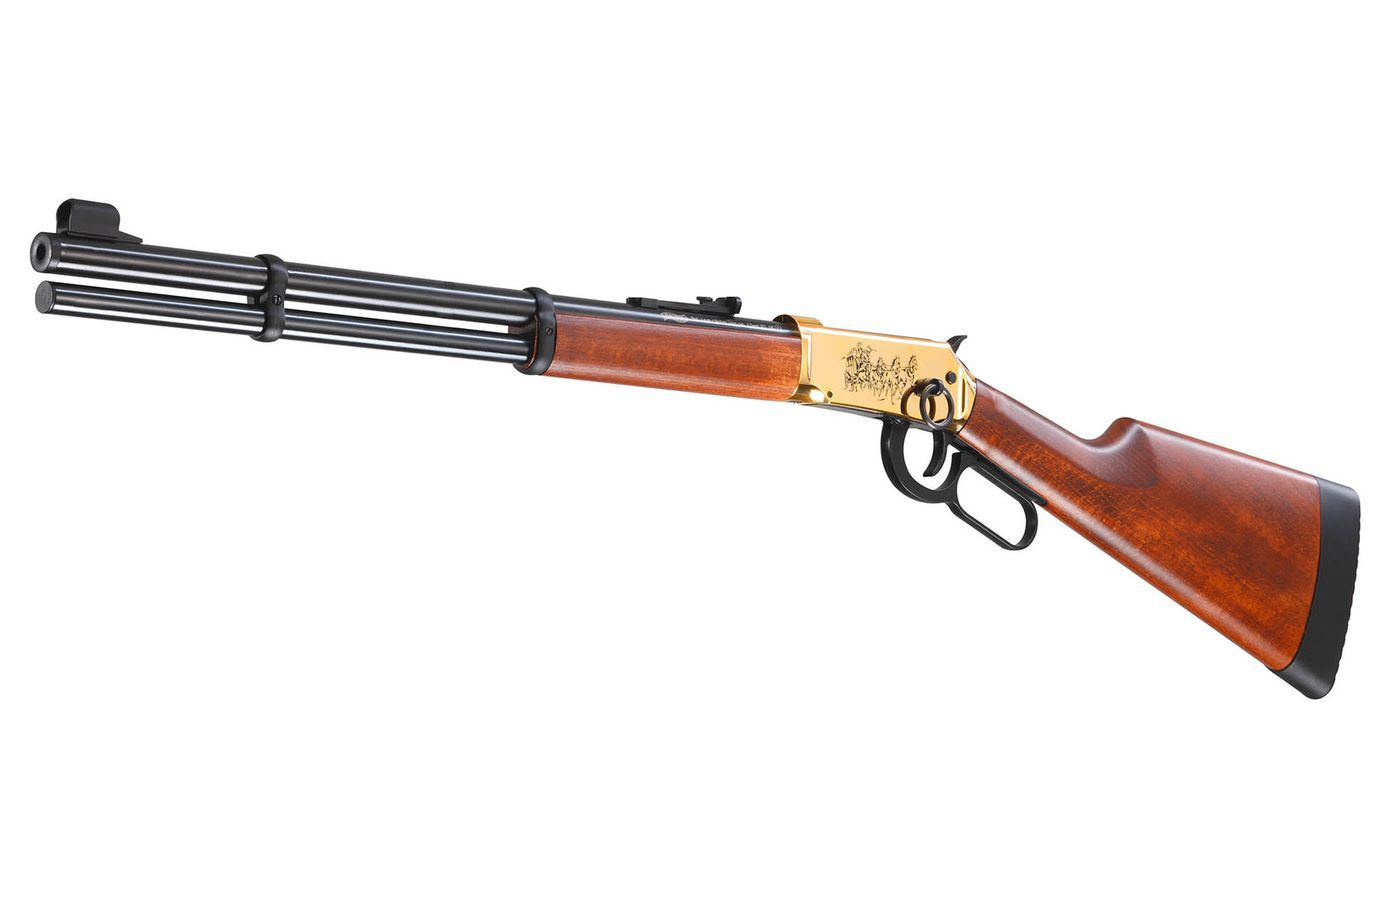 CARABINE A PLOMBS 4,5 CO2 WALTHER LEVER ACTION WELLS FARGO